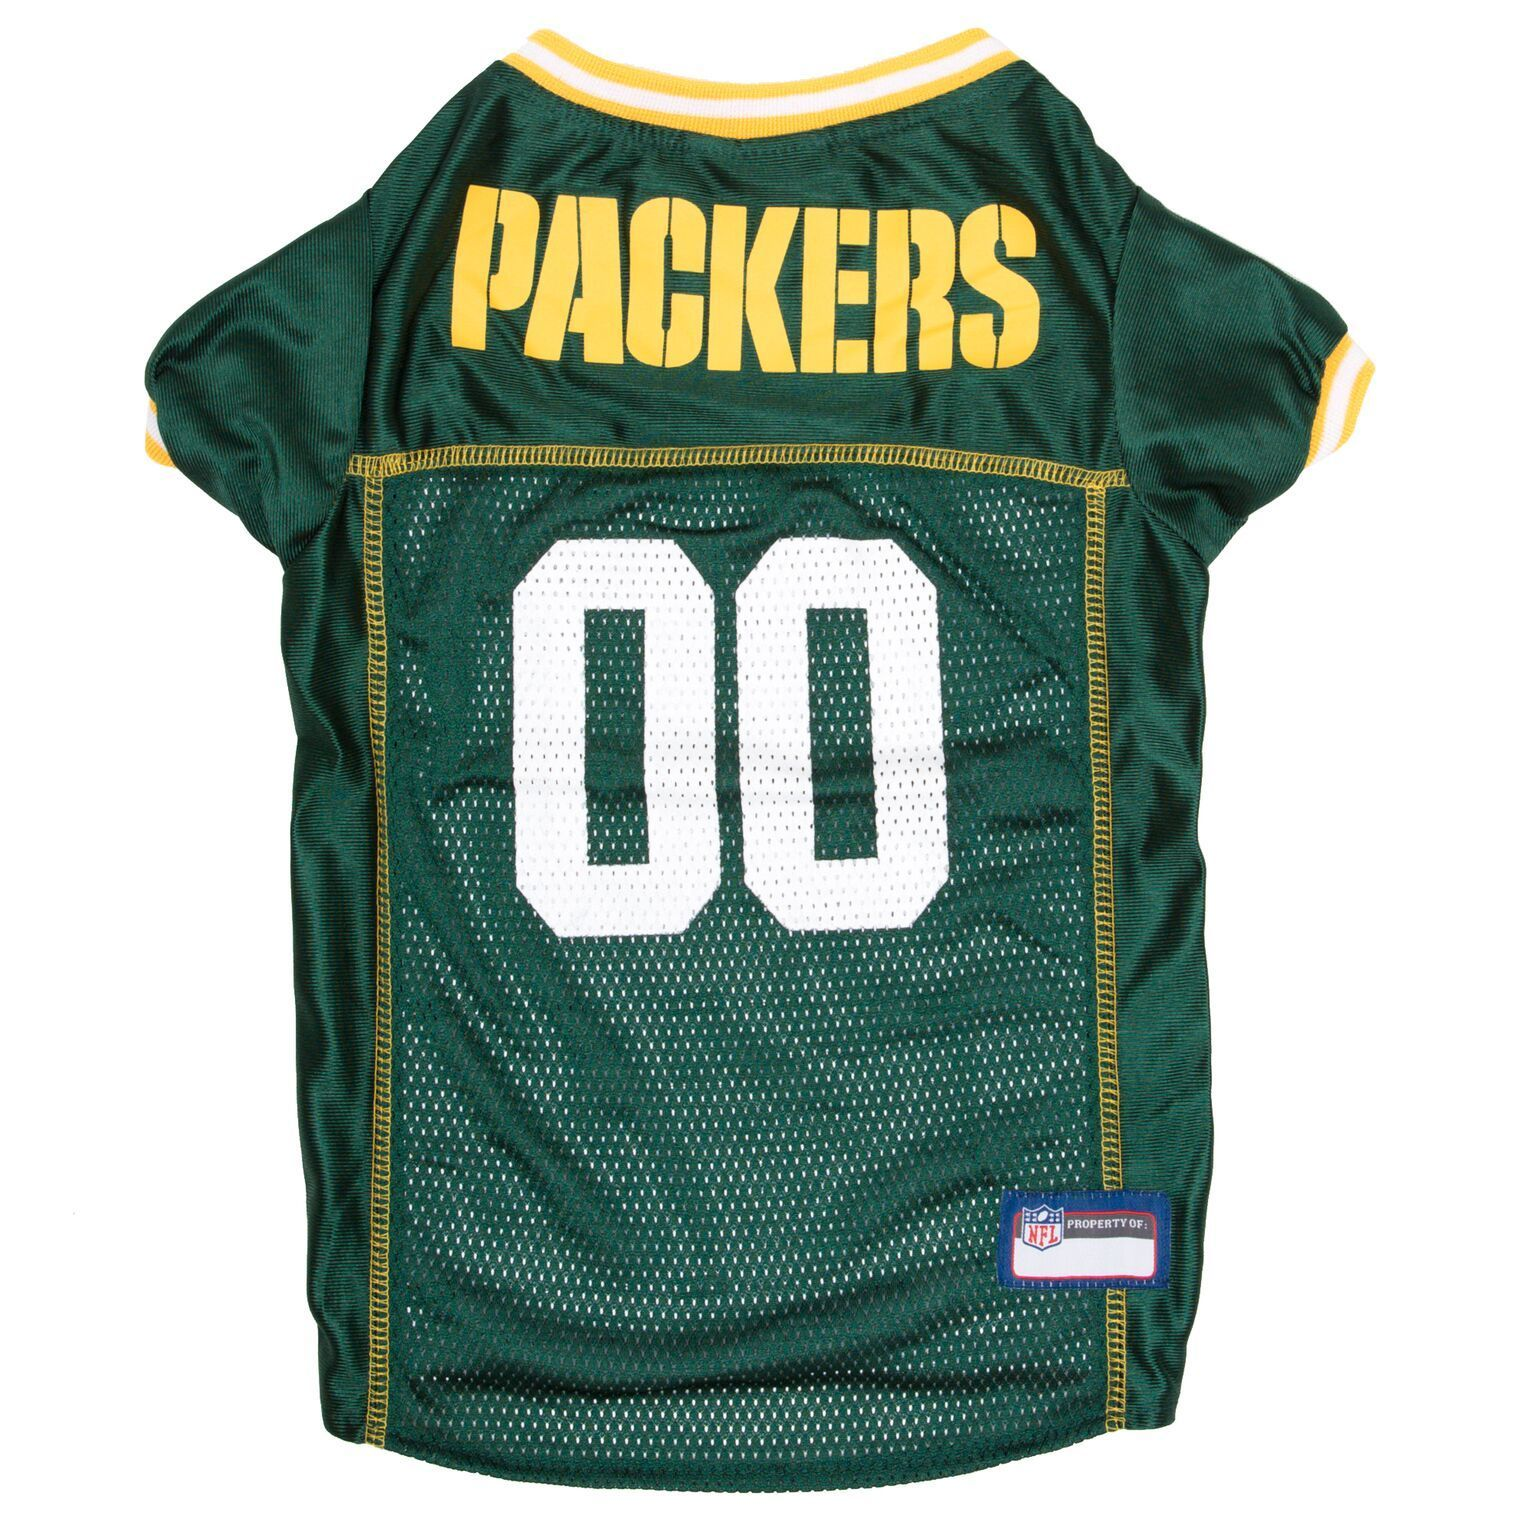 Nfl Jerseys For Dogs Dog Pro Team Football Jersey Nfl Green Bay Packers Green Bay Packers